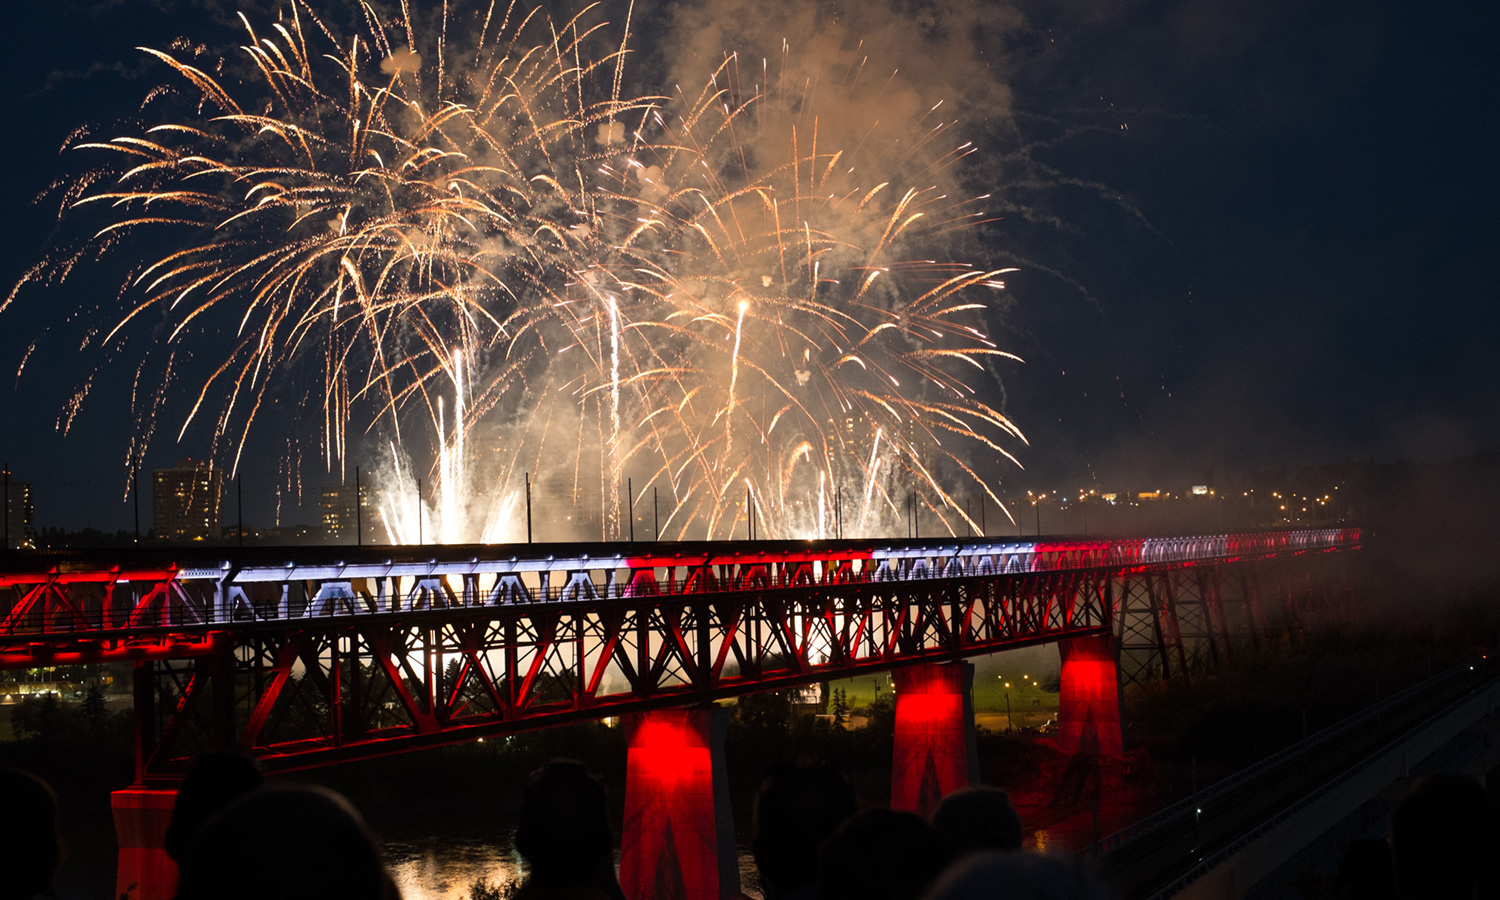 System was completed and designed note by note to synchronize the lighting to the music for the big Canada Day reveal!